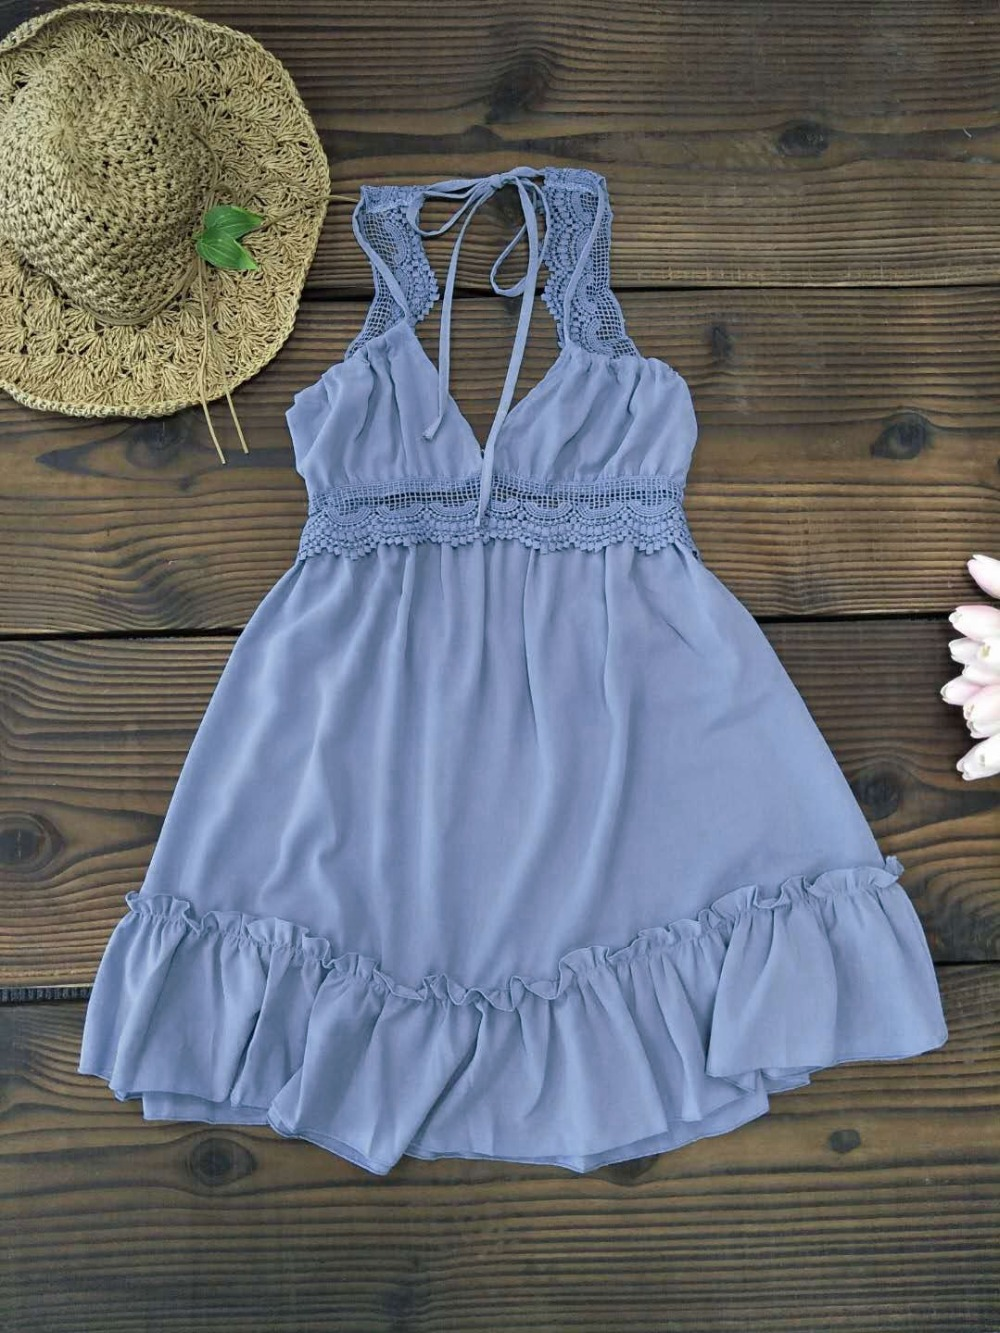 2019 Newest Ladies Cover-Up, V Neck Swimwear Cover Up, Lace Hollow Crochet Swimsuit Beach Dress, Women's Bathing Suit Beach Cover Up 21